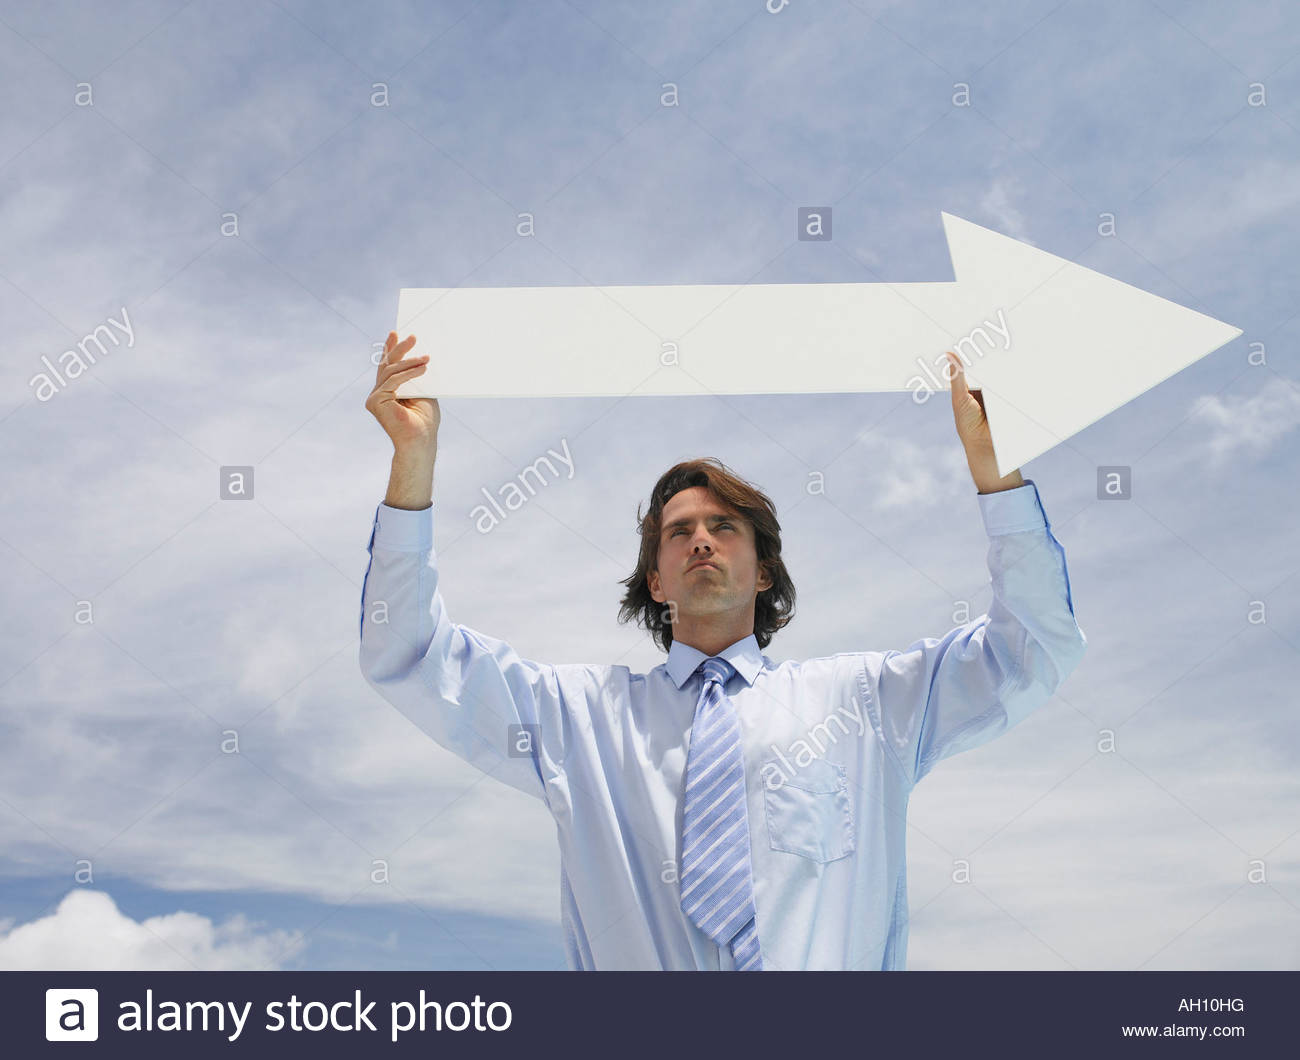 Businessman outdoors holding blank arrow with sky in background - Stock Image